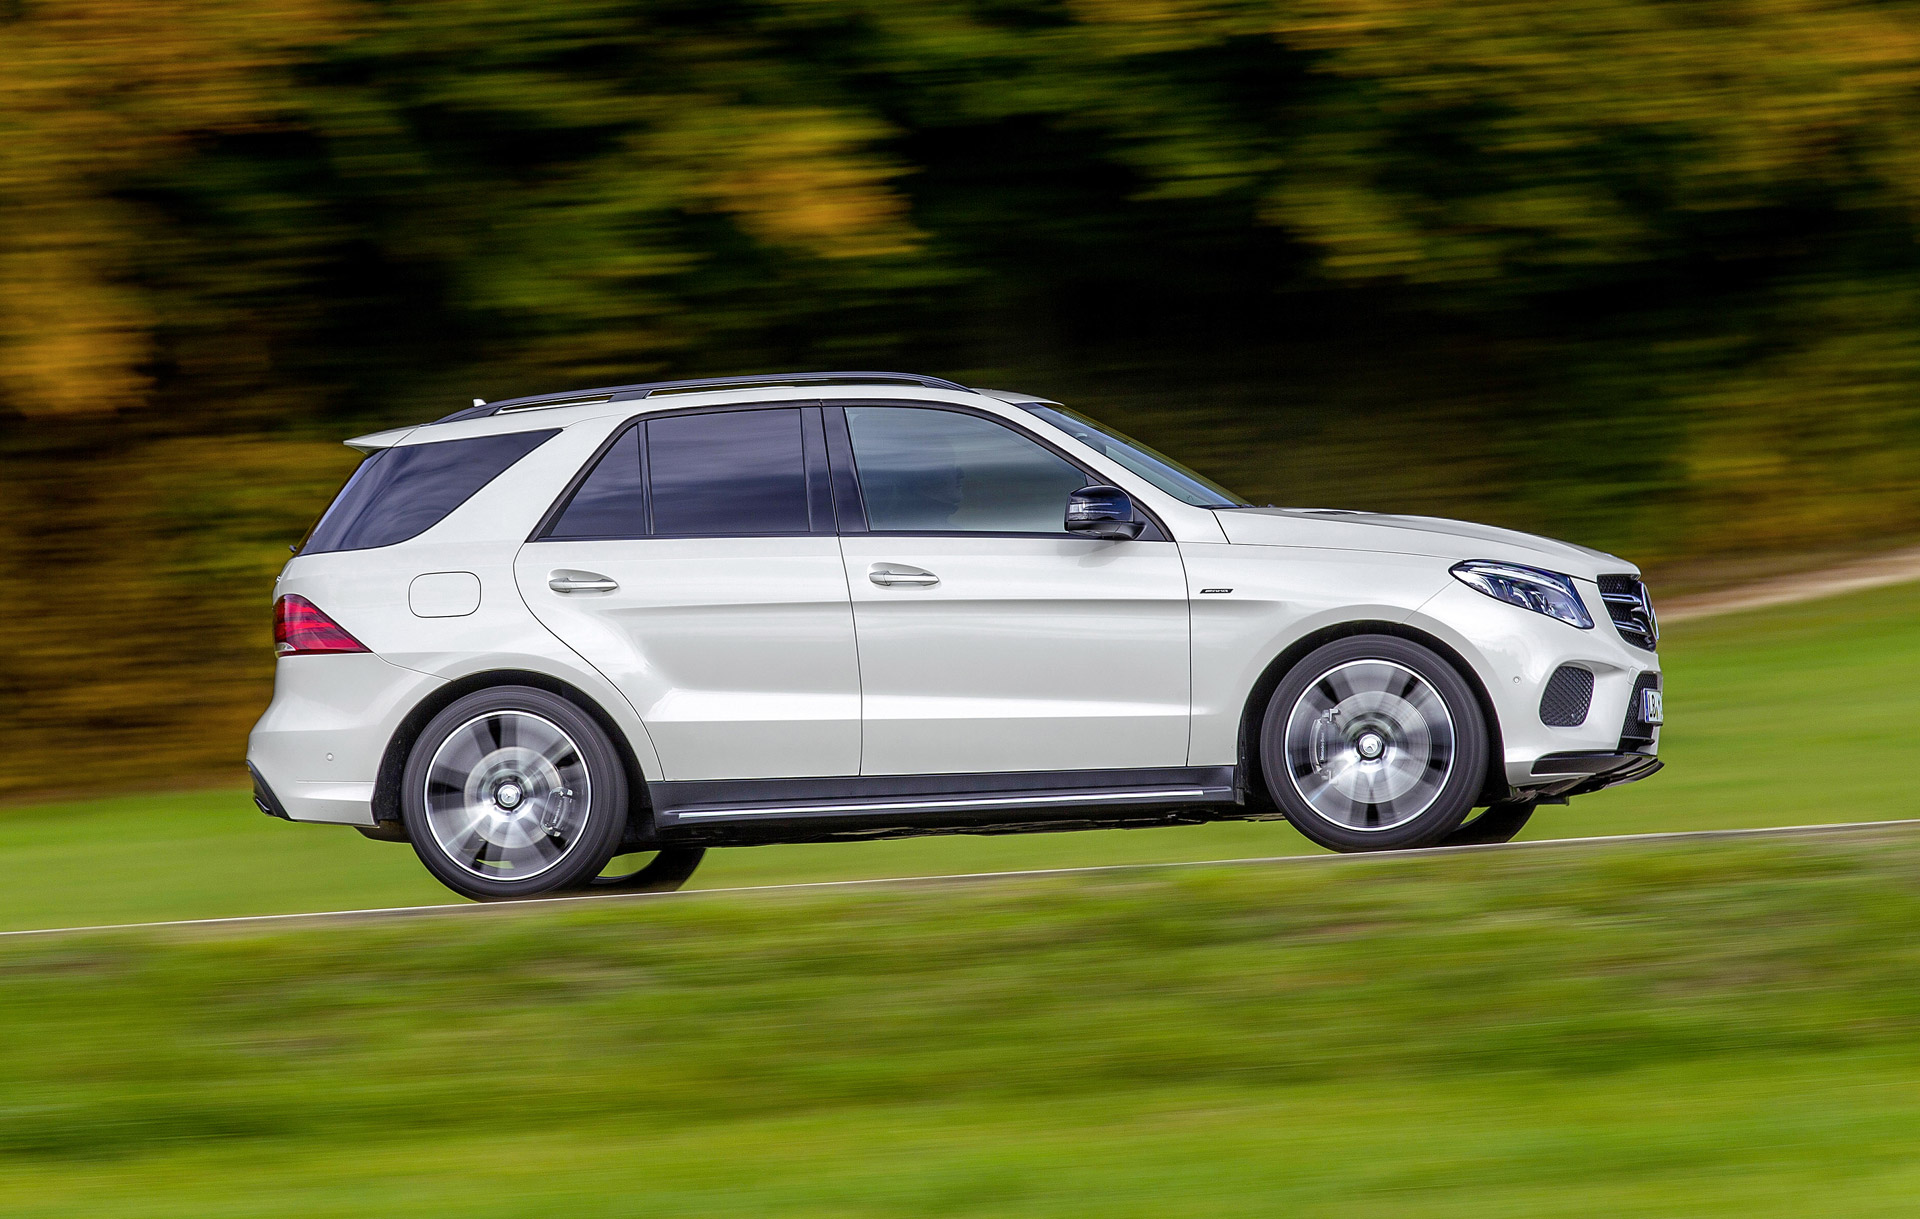 2016 mercedes gle450 amg tesla autopilot volvo s new compacts car news headlines. Black Bedroom Furniture Sets. Home Design Ideas